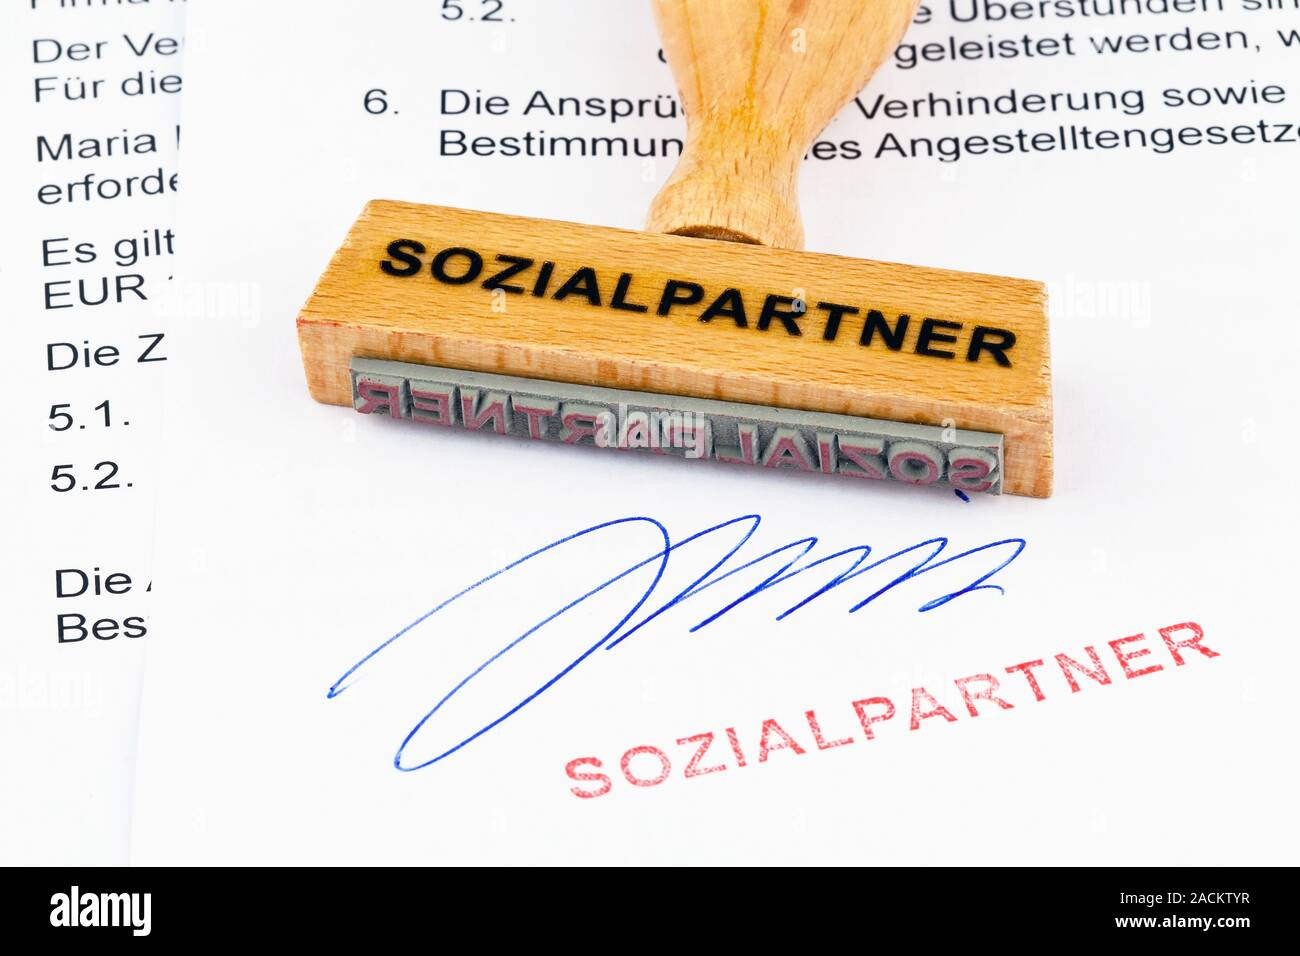 Wooden stamp on document: Social partners Stock Photo